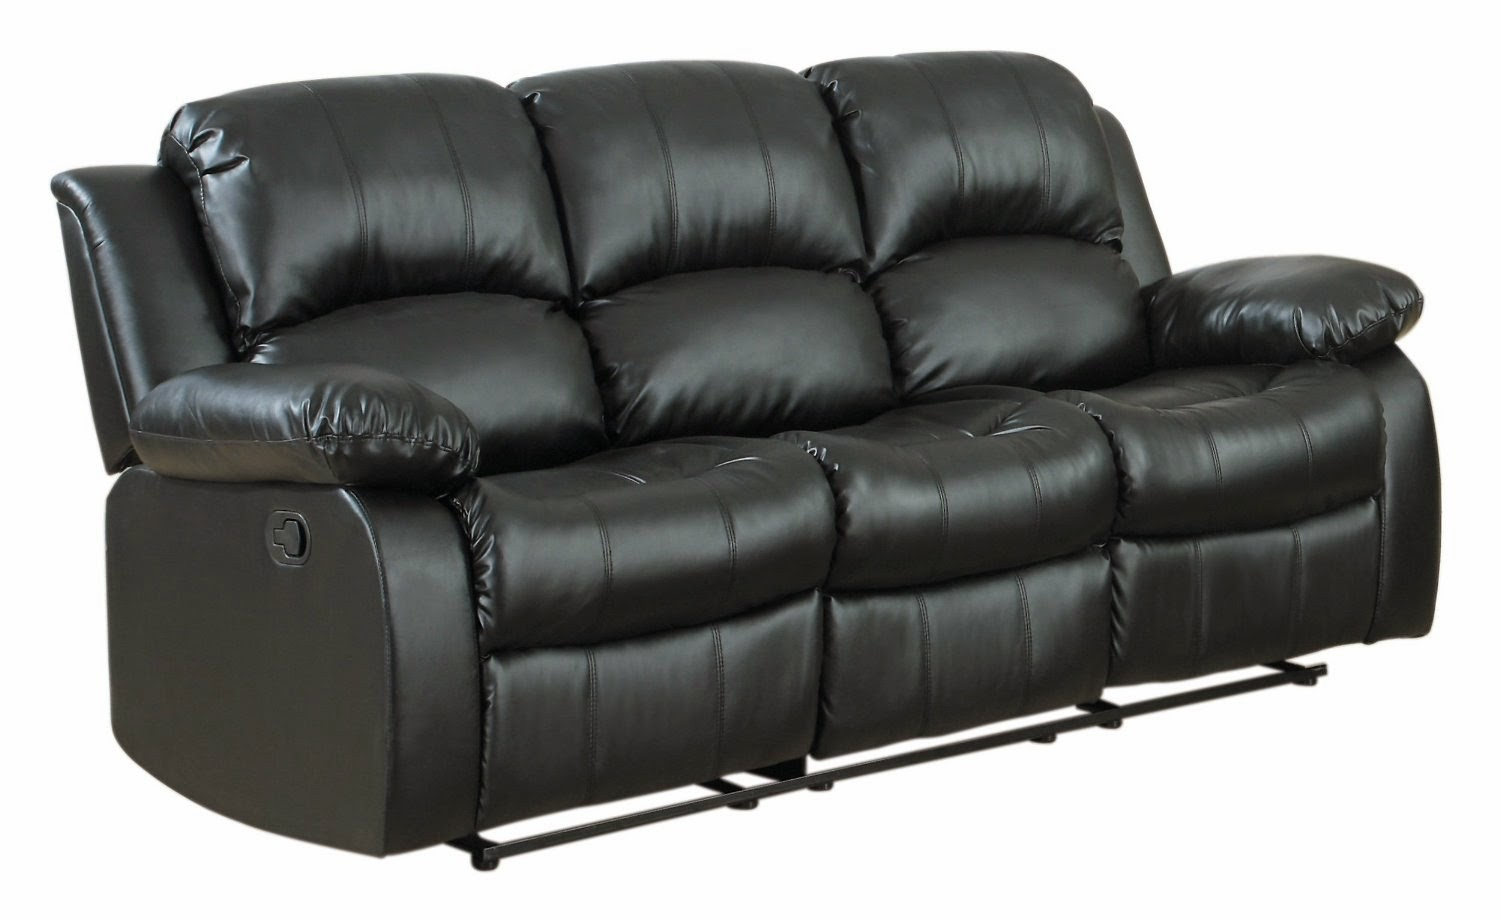 Best Home Furnishings Recliner Reviews